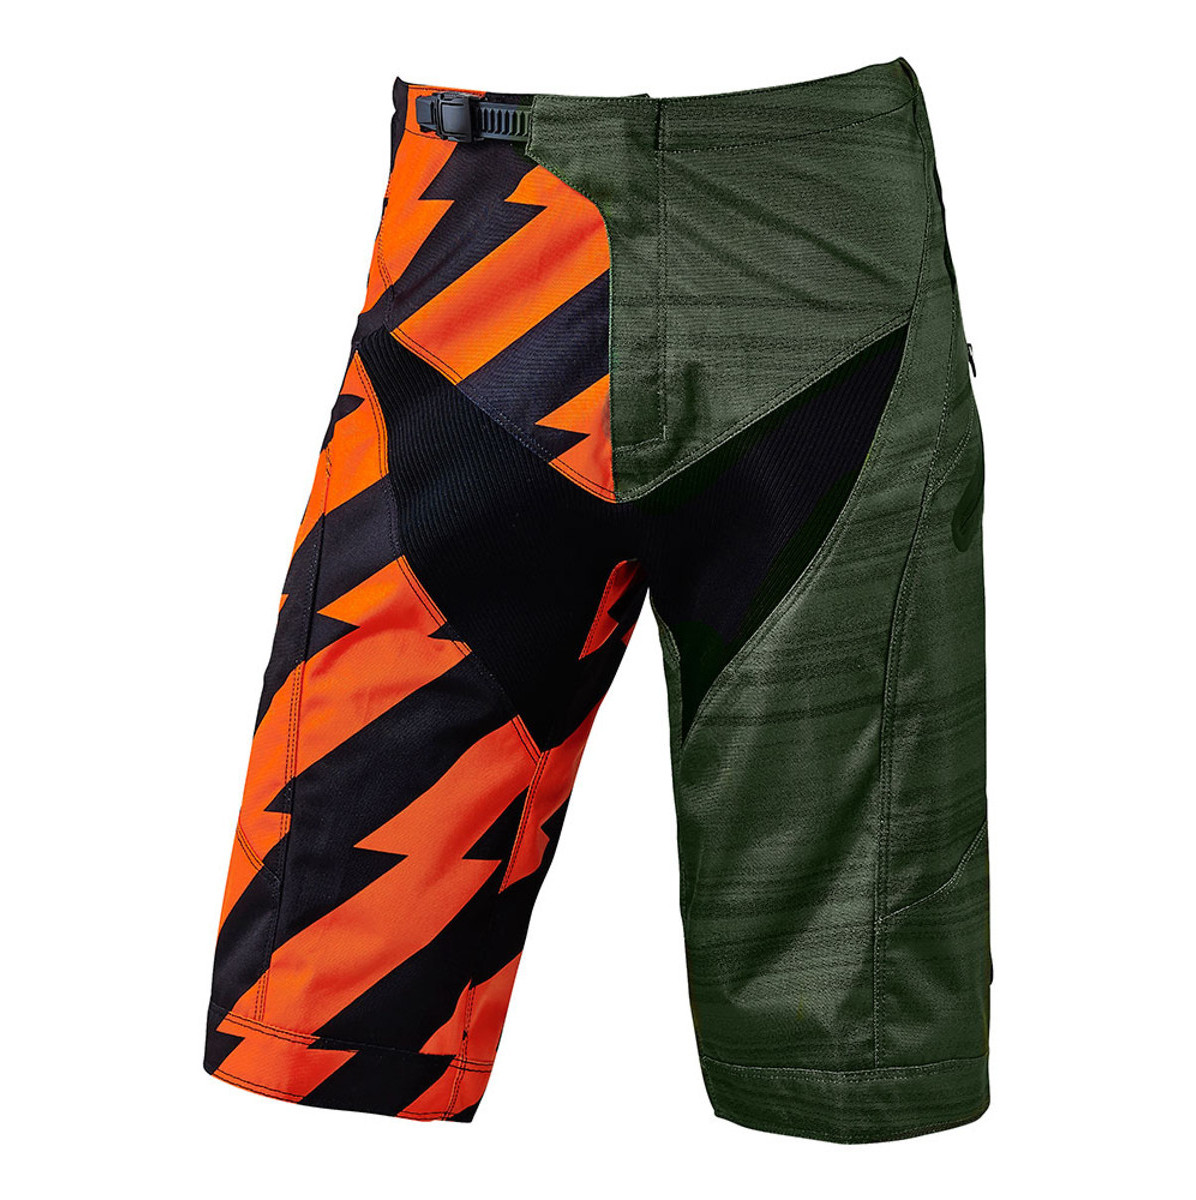 dc99e4fe8 Troy Lee Designs Moto Shorts - Reviews